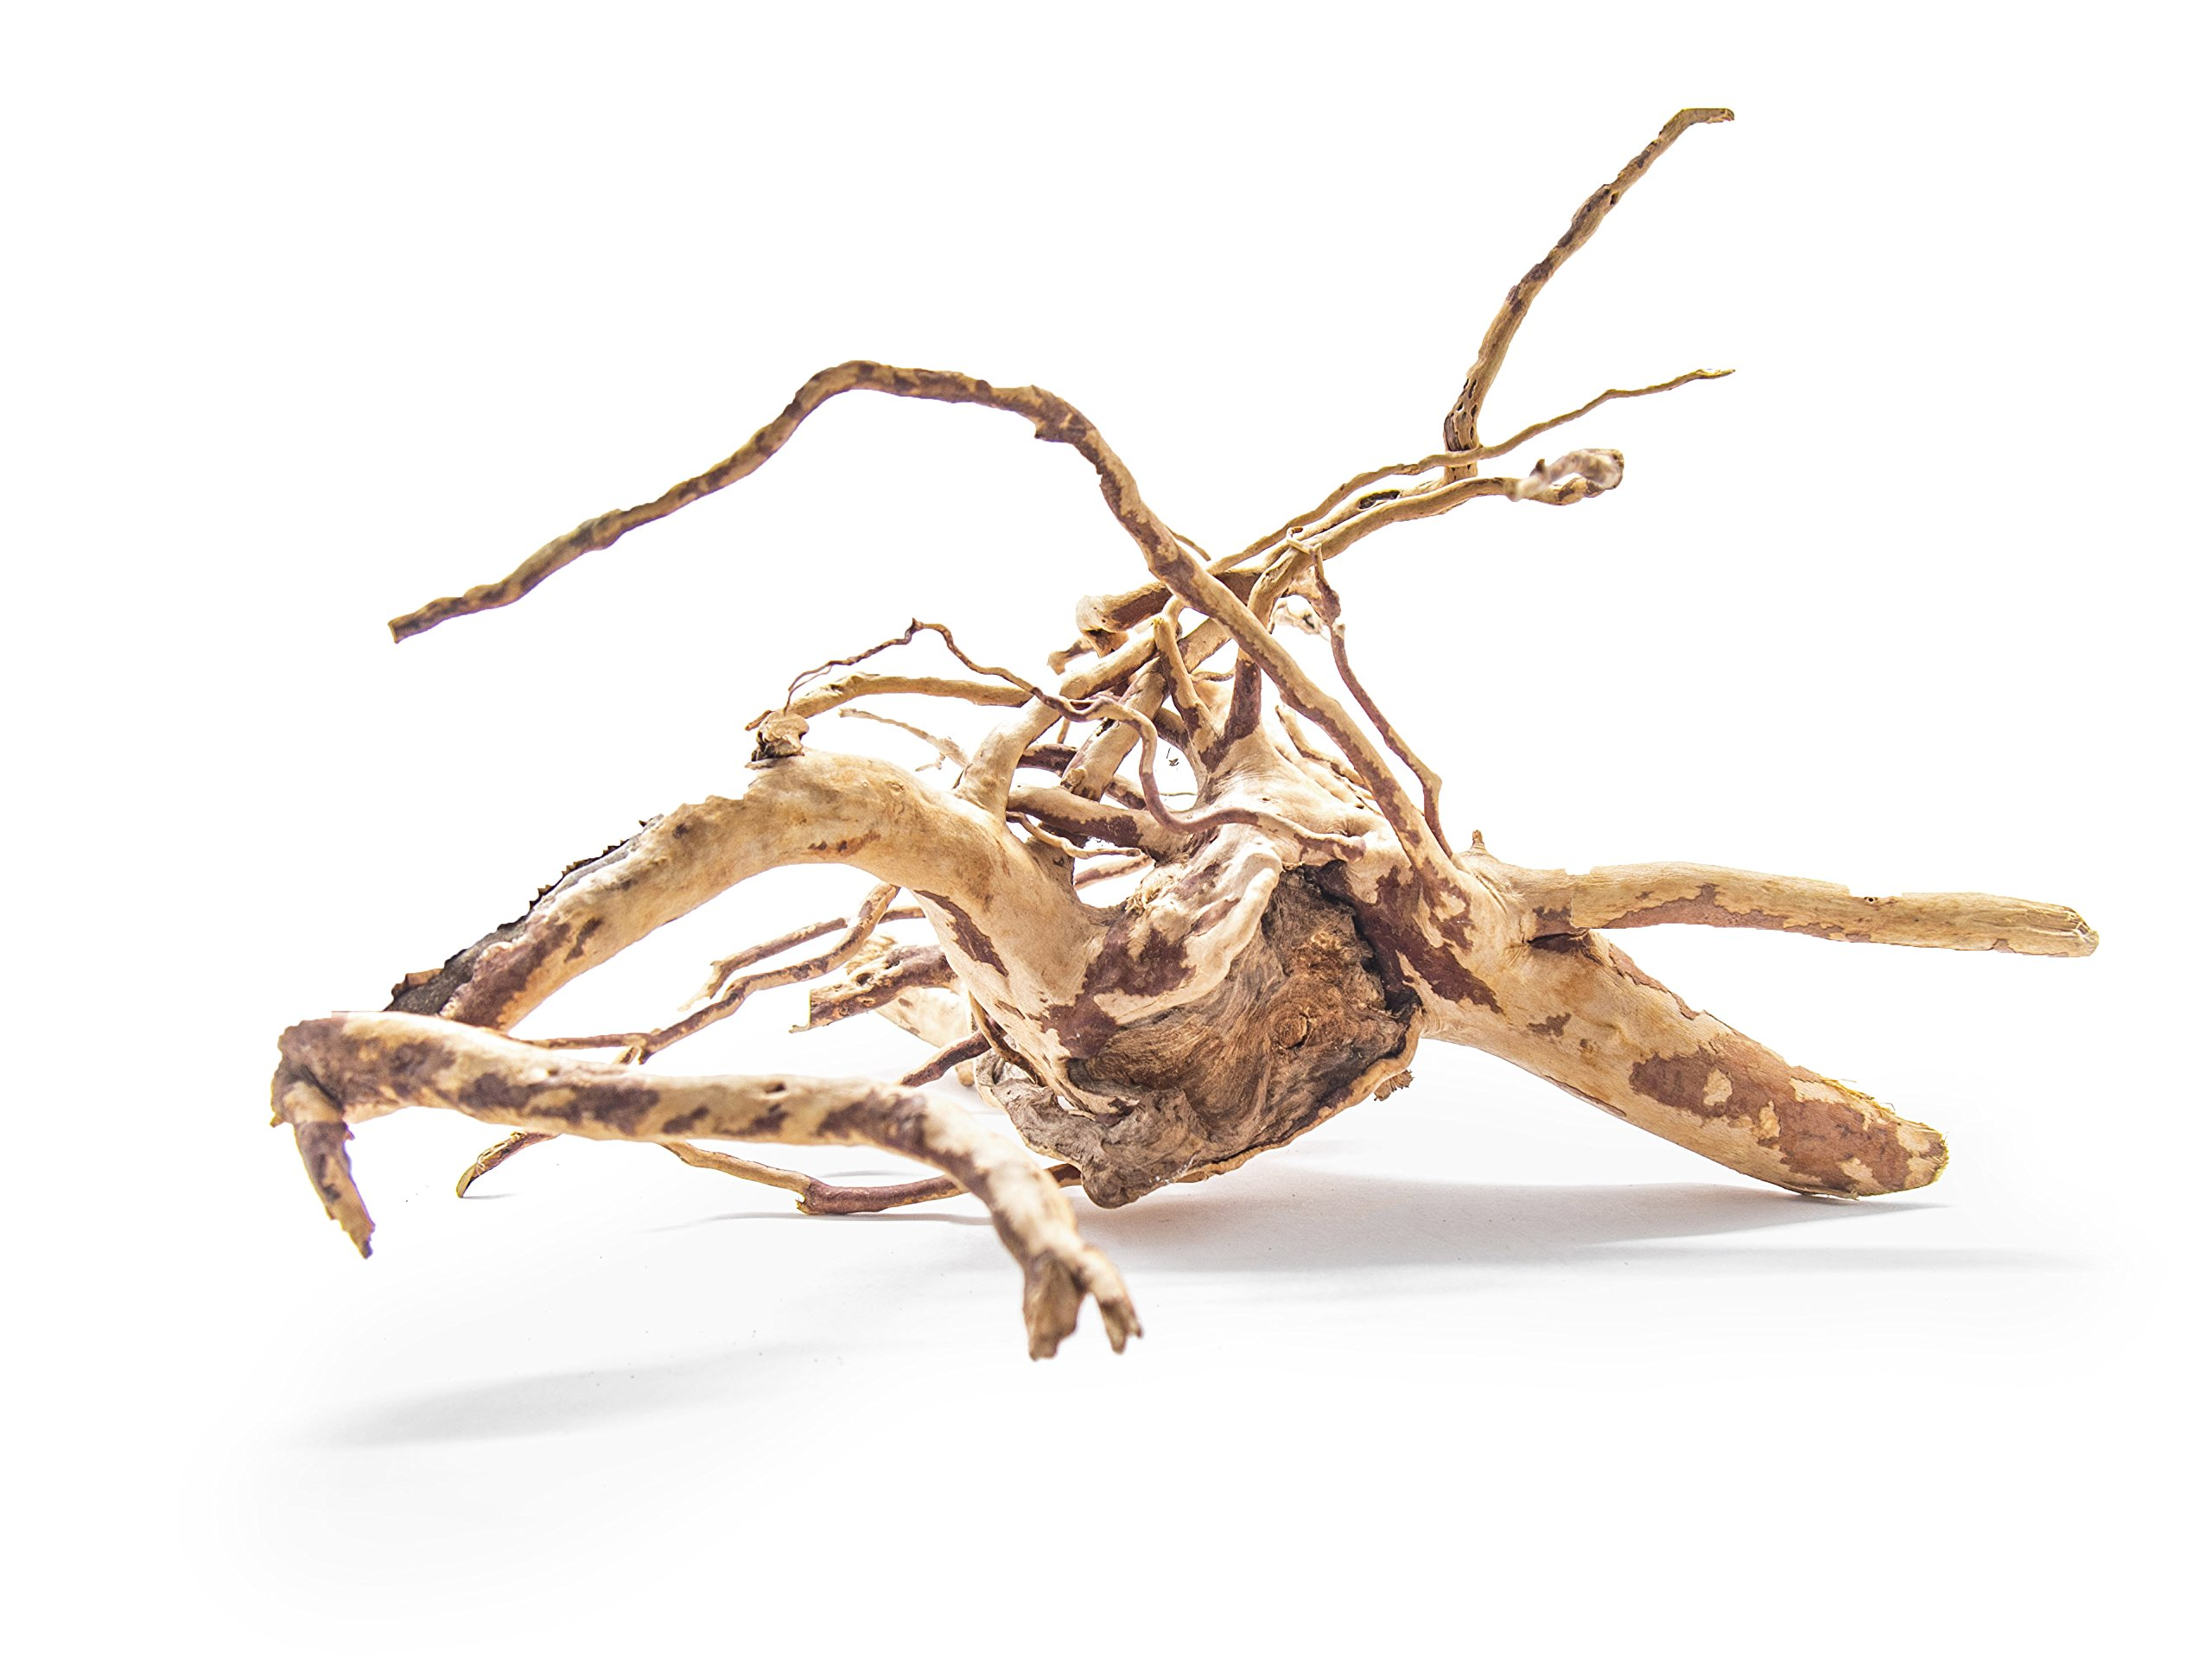 Aquatic Arts 1 Medium Sized Piece of Spider Wood aka Azalea Wood Natural Aquarium Driftwood, 9-12''